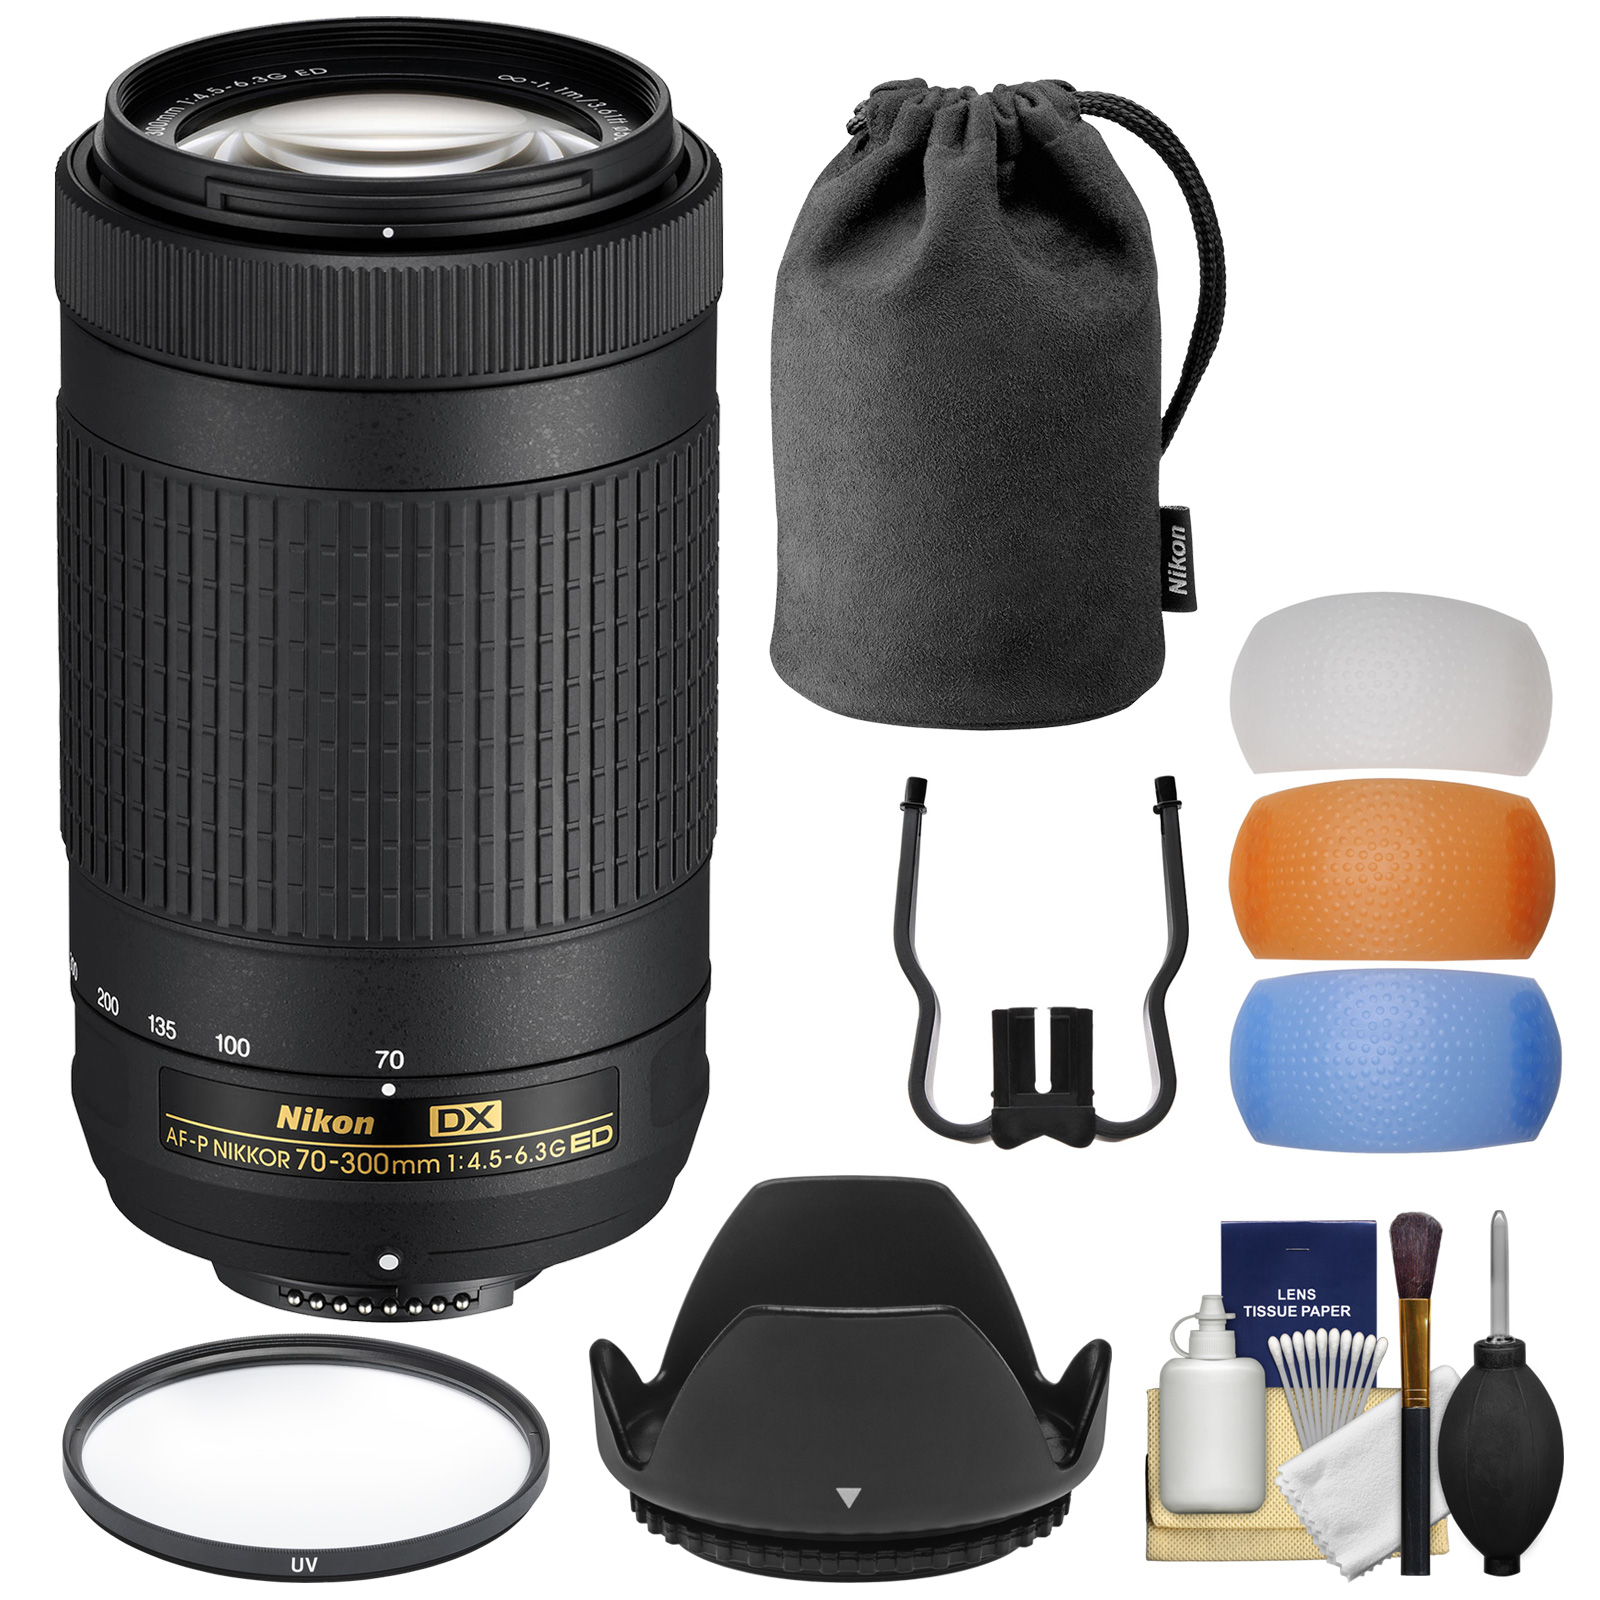 Nikon 70-300mm f/4.5-6.3G DX AF-P ED Zoom-Nikkor Lens - Factory Refurbished with Pouch + Hood + Filter + 3 Pop-up Flash Diffusers + Kit